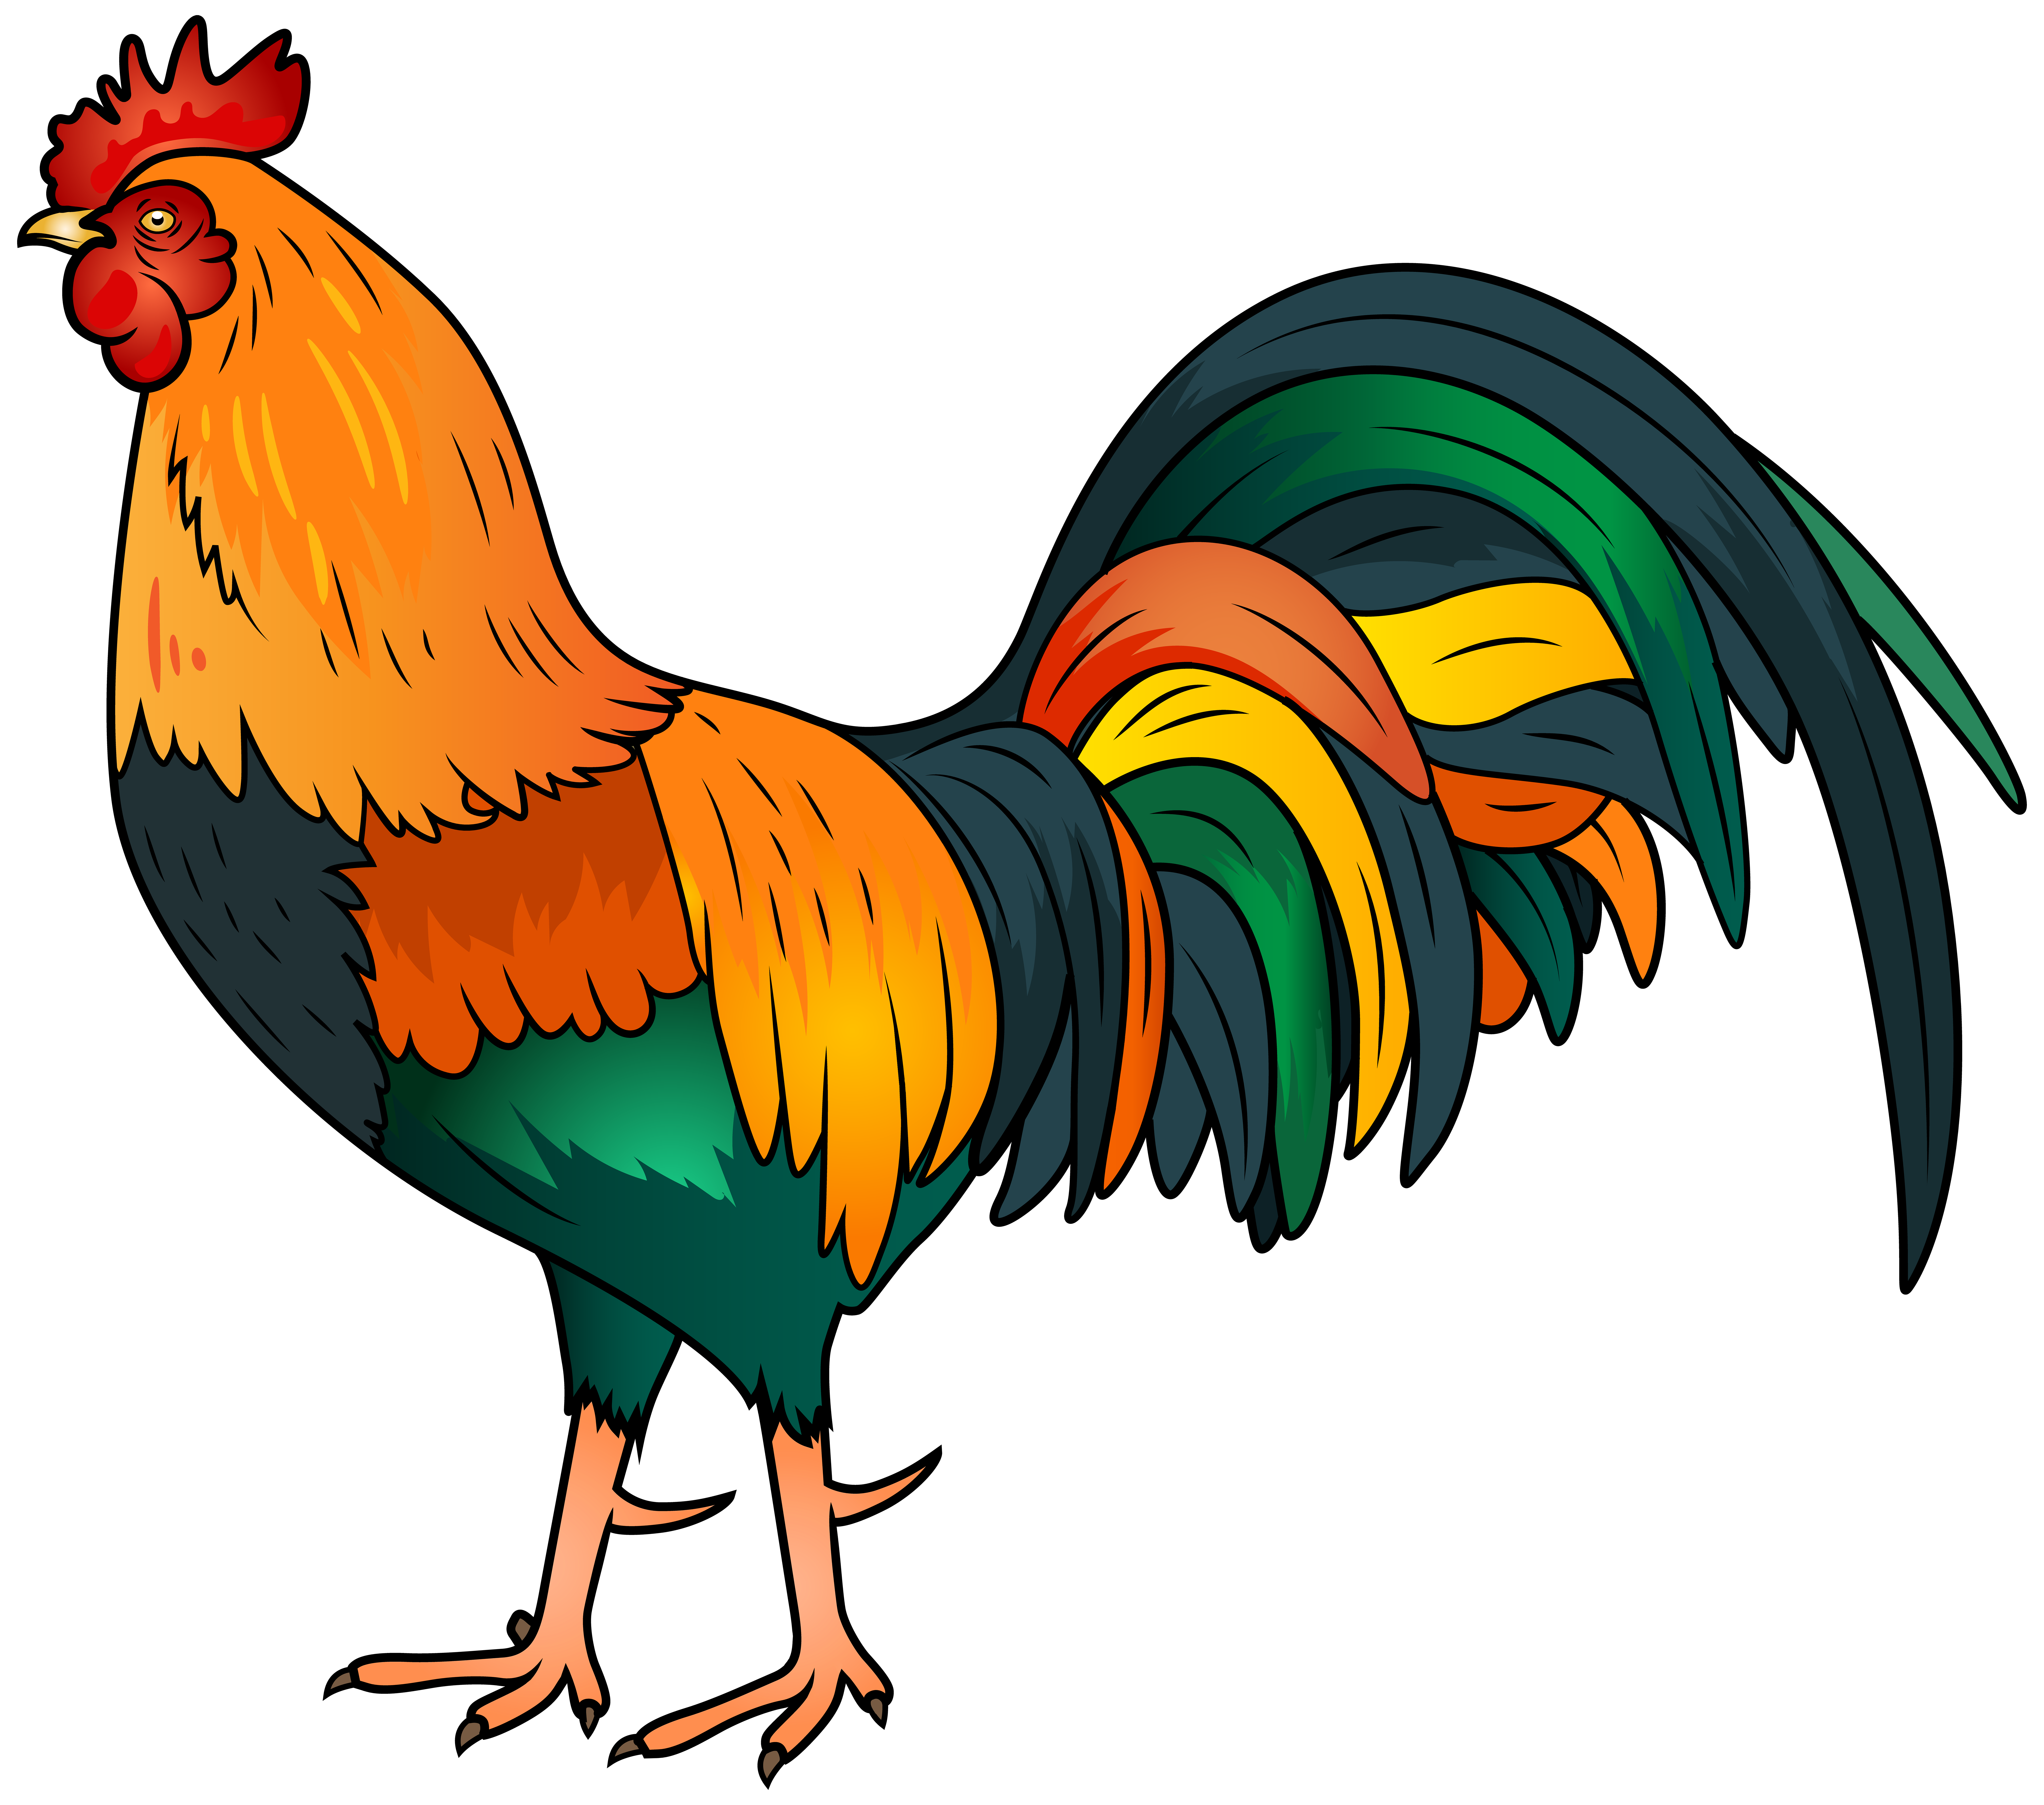 Rooster sun clipart png royalty free library Rooster clip art image - Clipartix   Clip art   Pinterest   Art ... png royalty free library